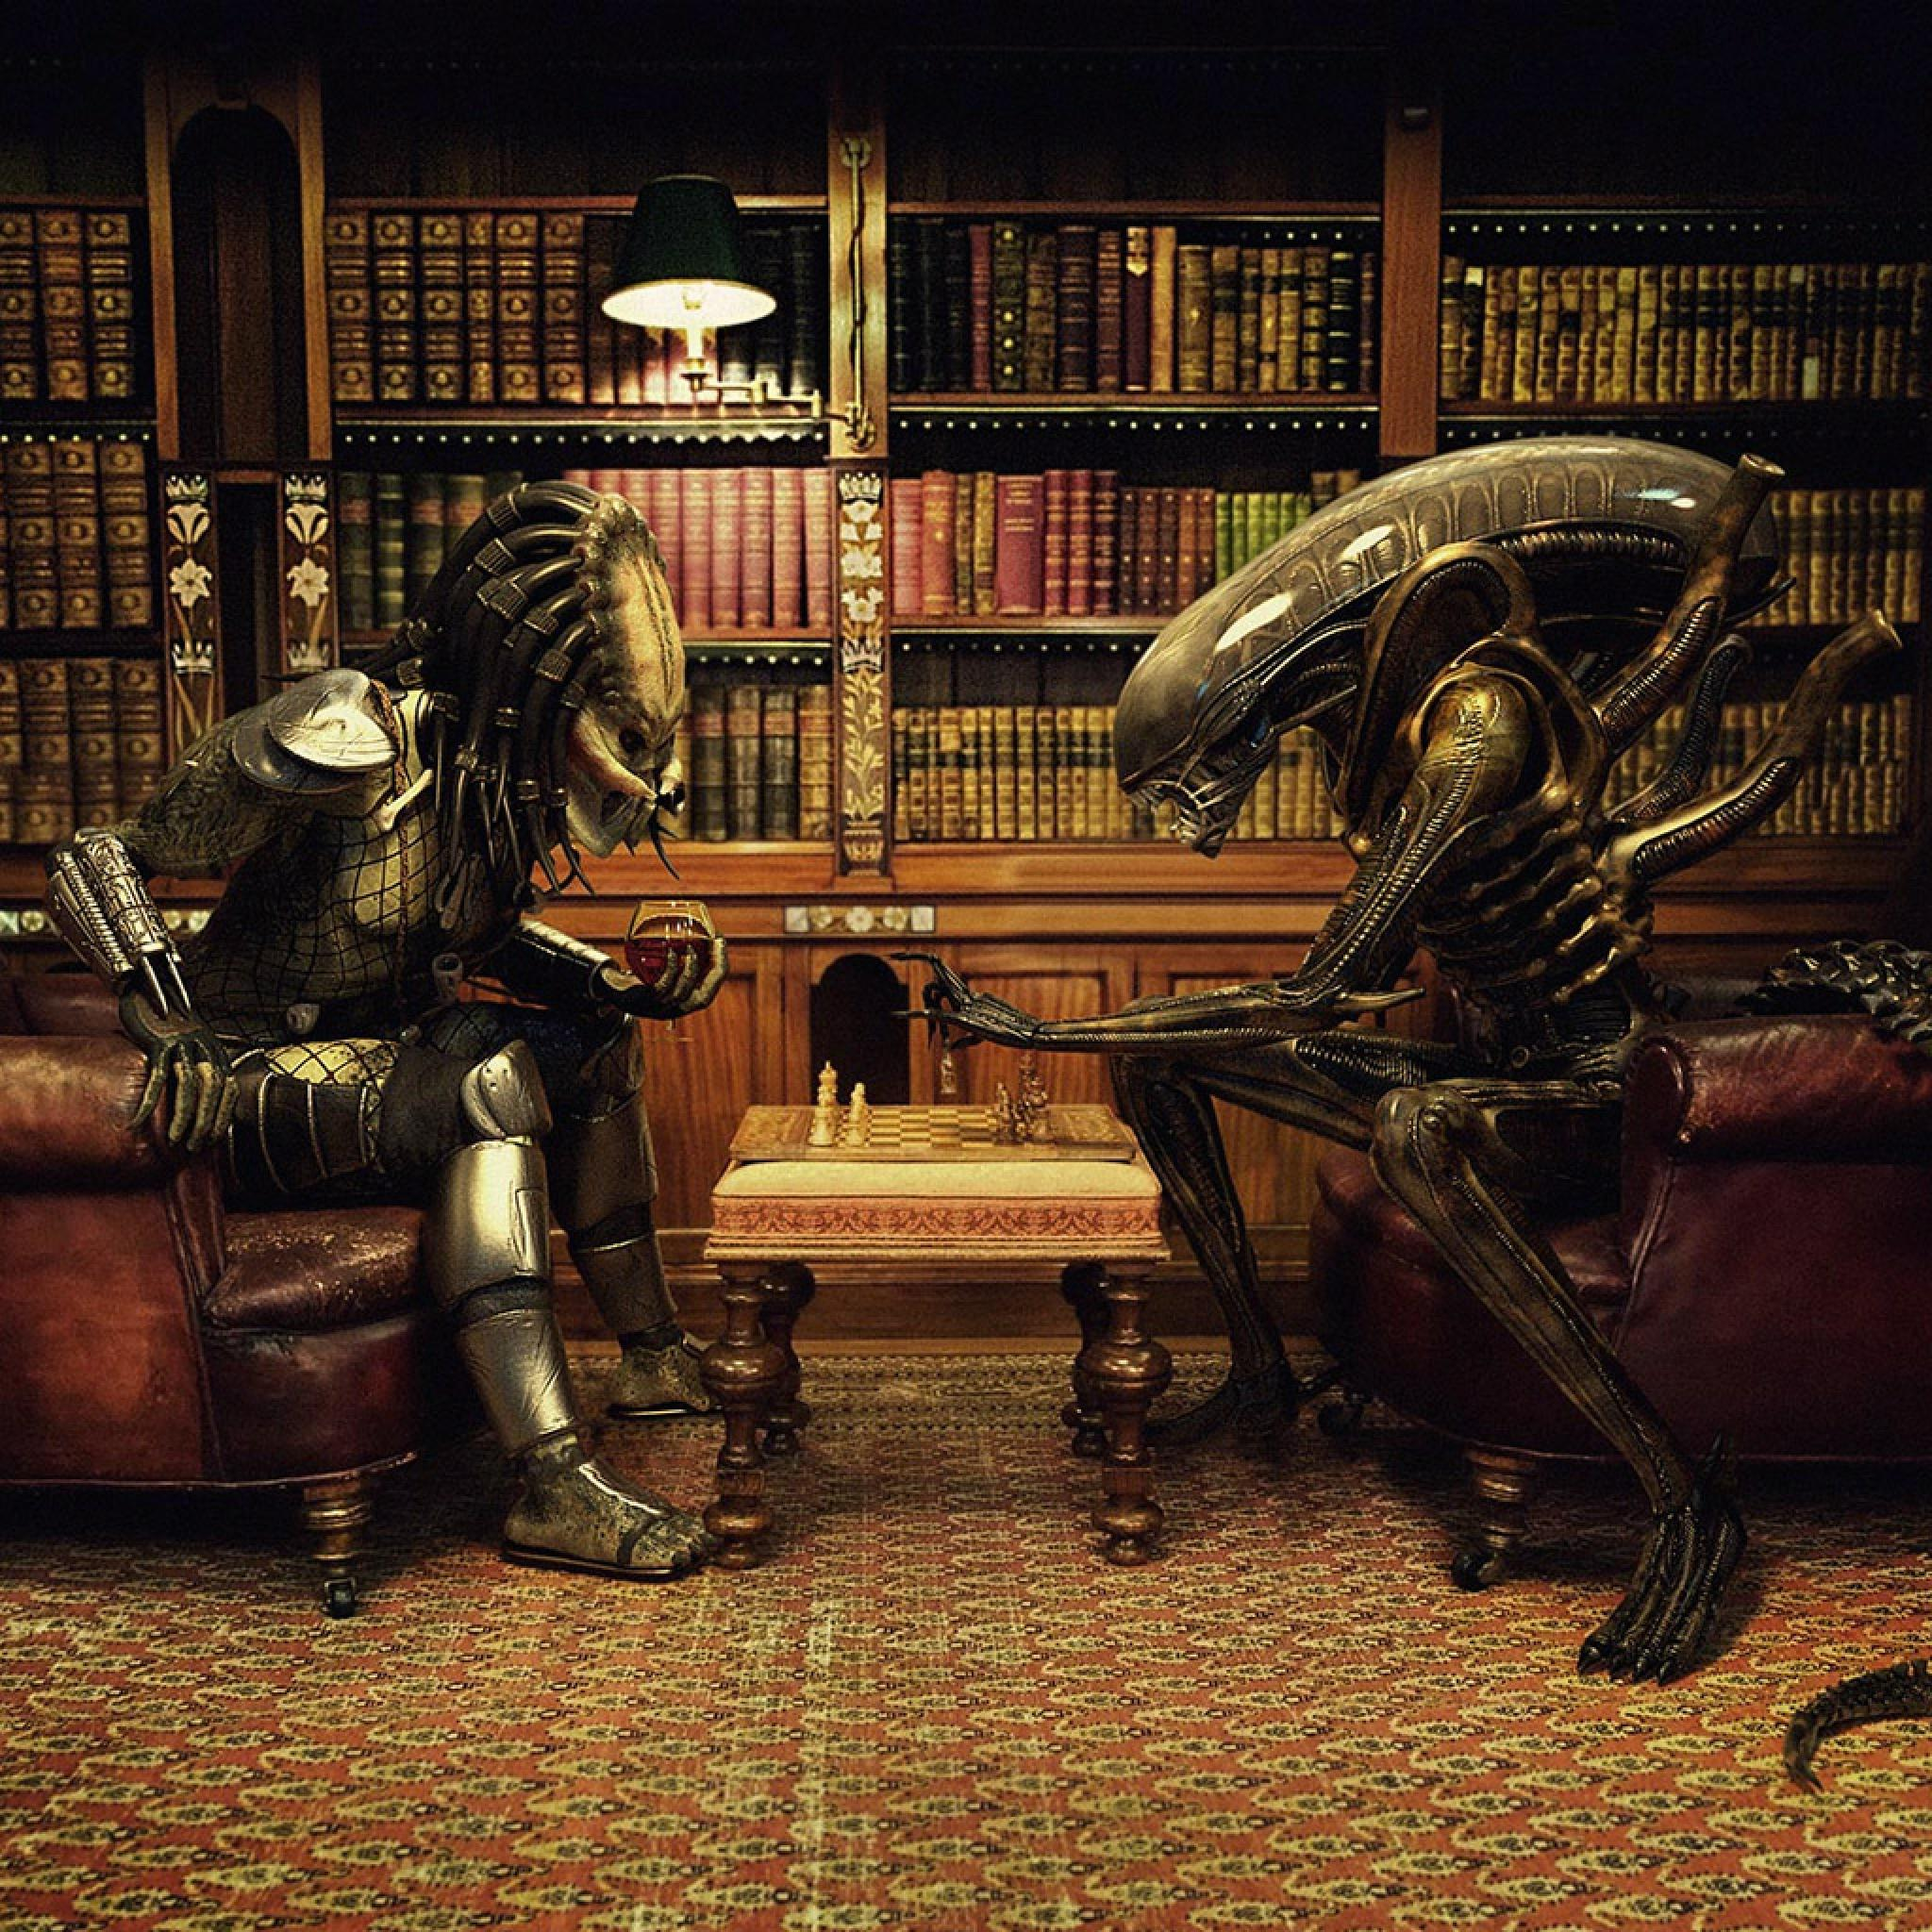 Alien Vs Predator Playing Chess   iPad iPhone HD Wallpaper 2048x2048